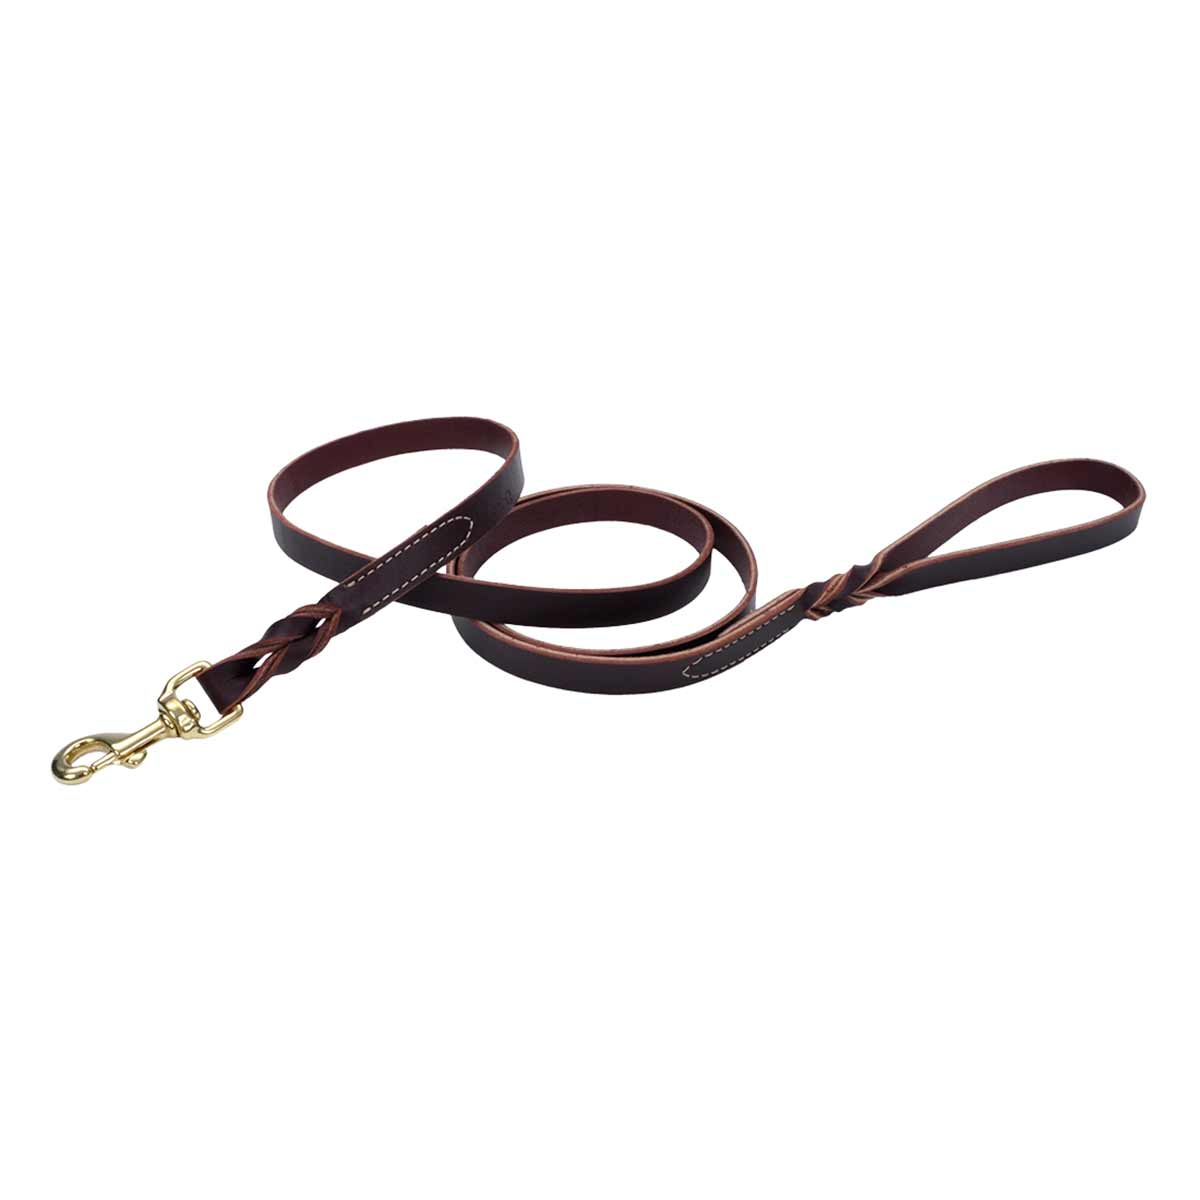 Brown Latigo Leather Twist Dog Lead with Brass Hardware 3/4 inch X 6 feet